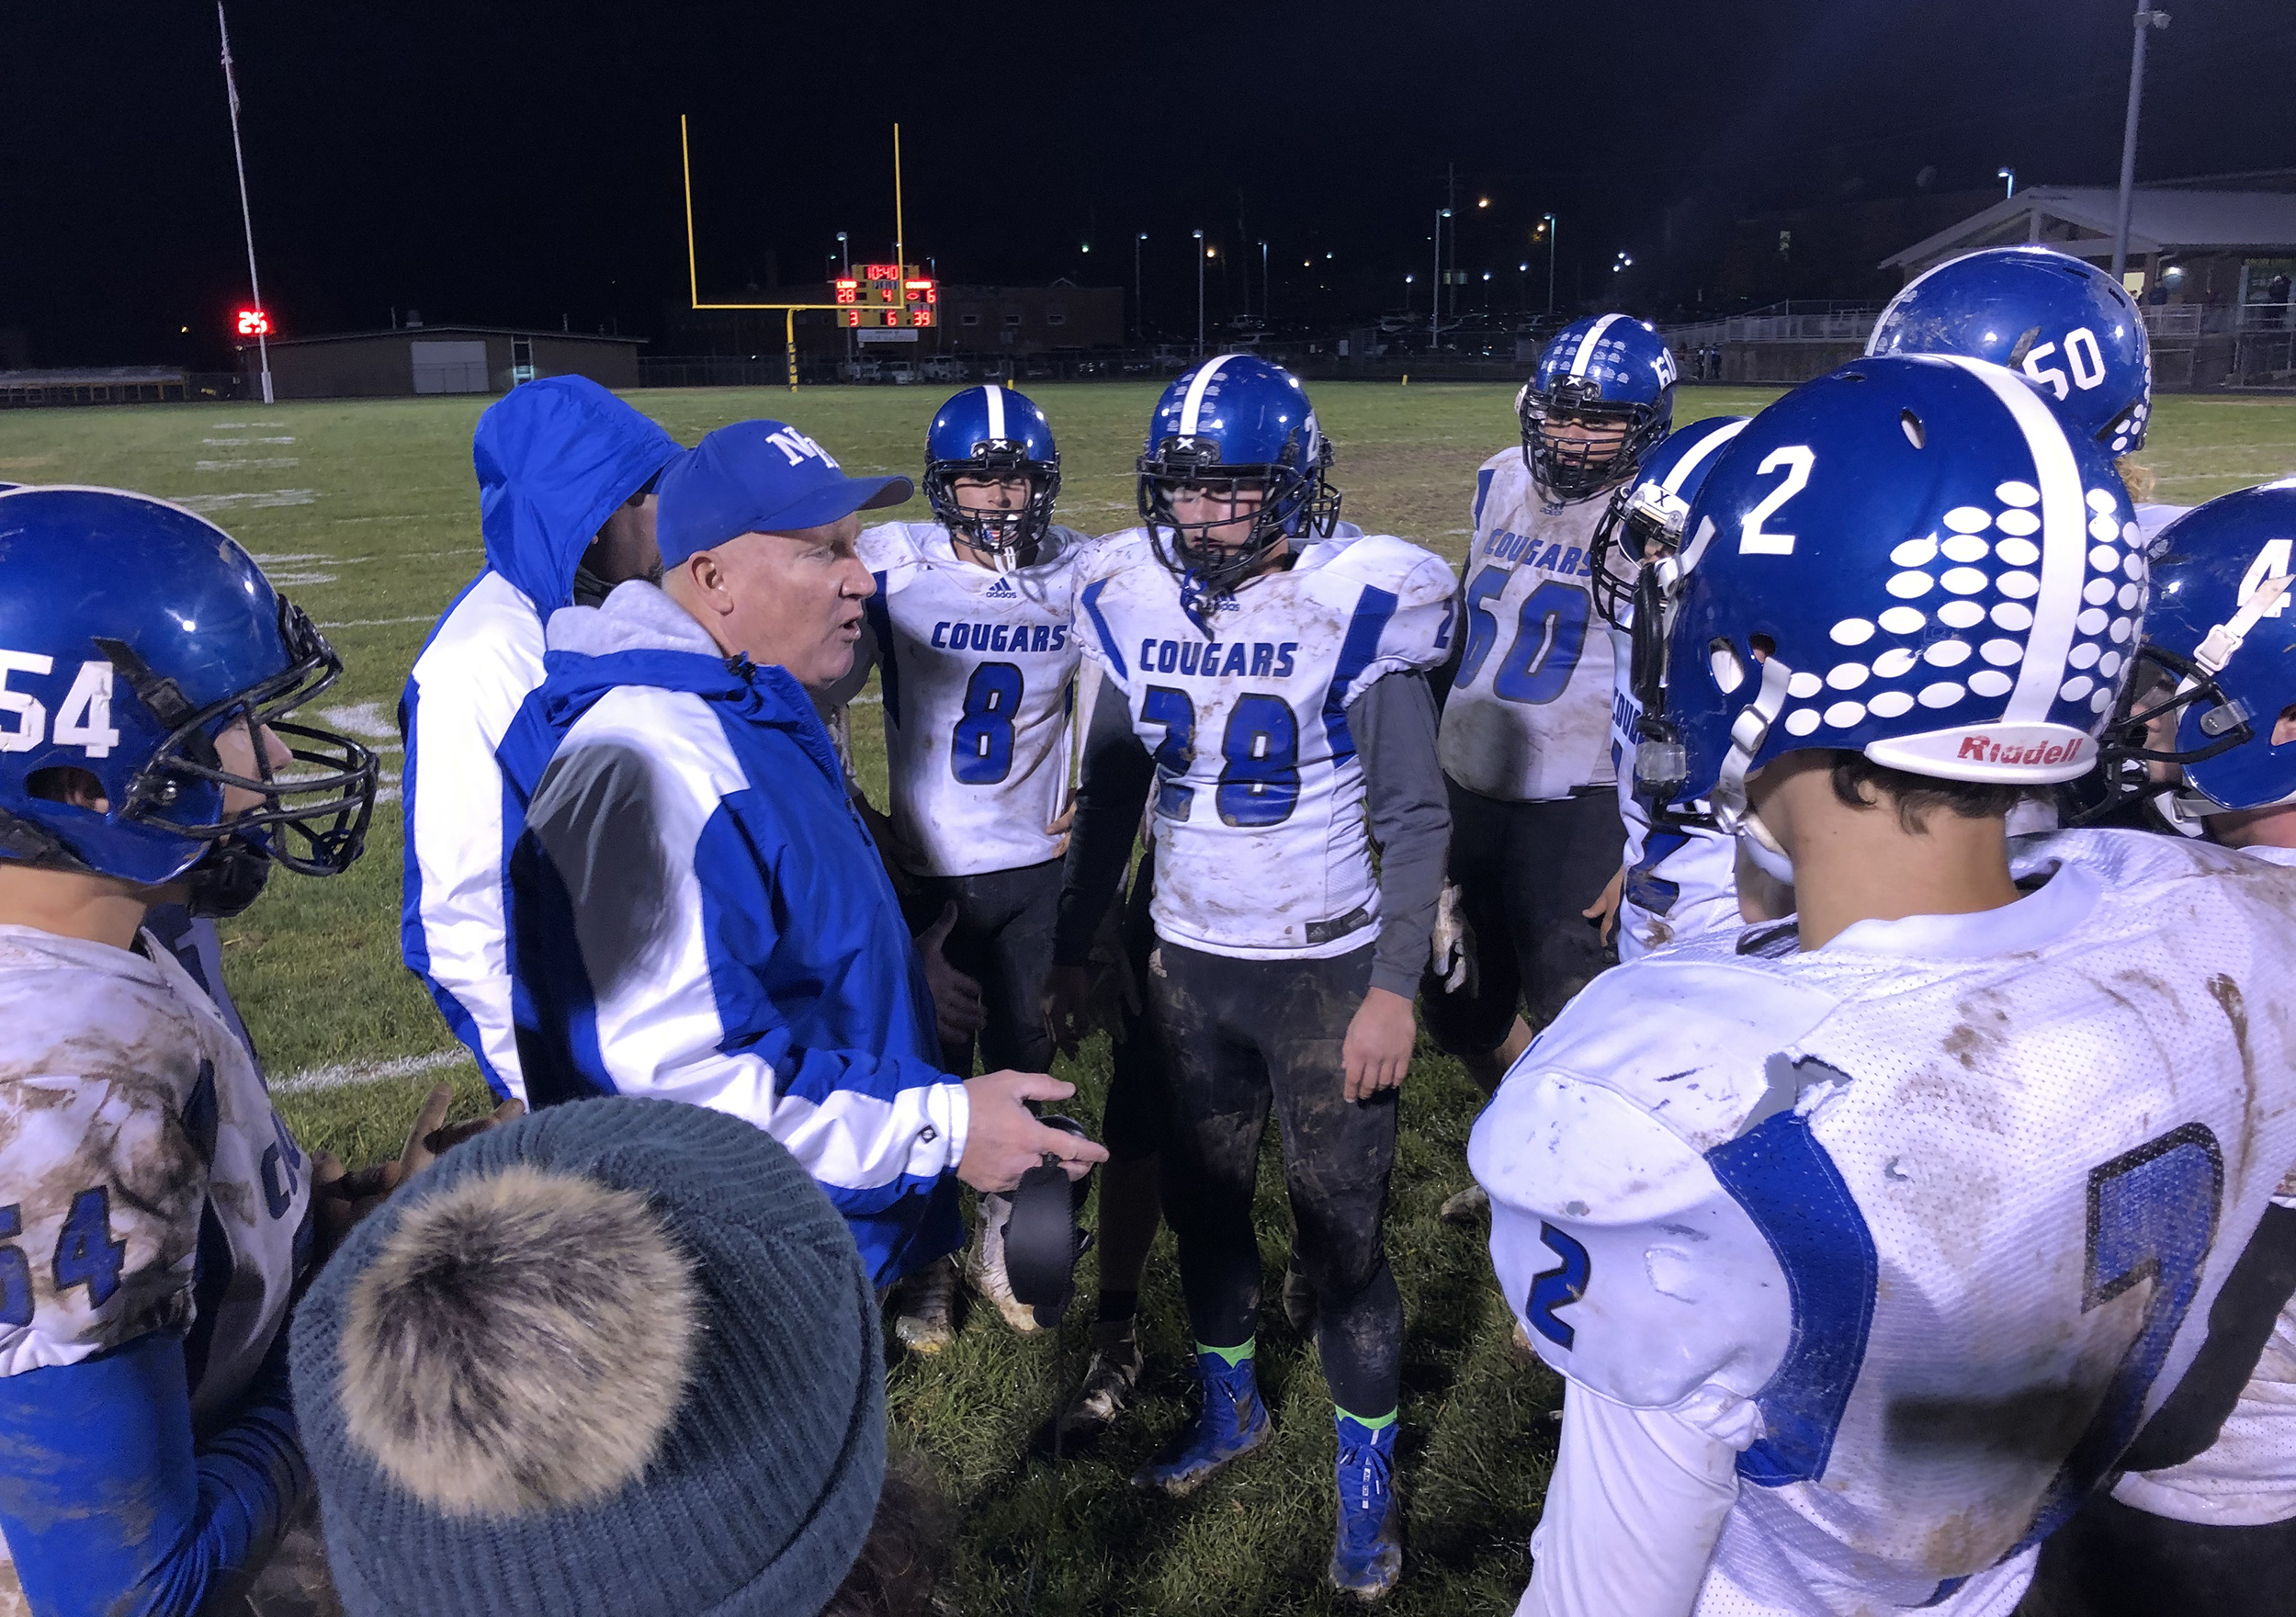 Lions turn the tables on Cougars, 28-14